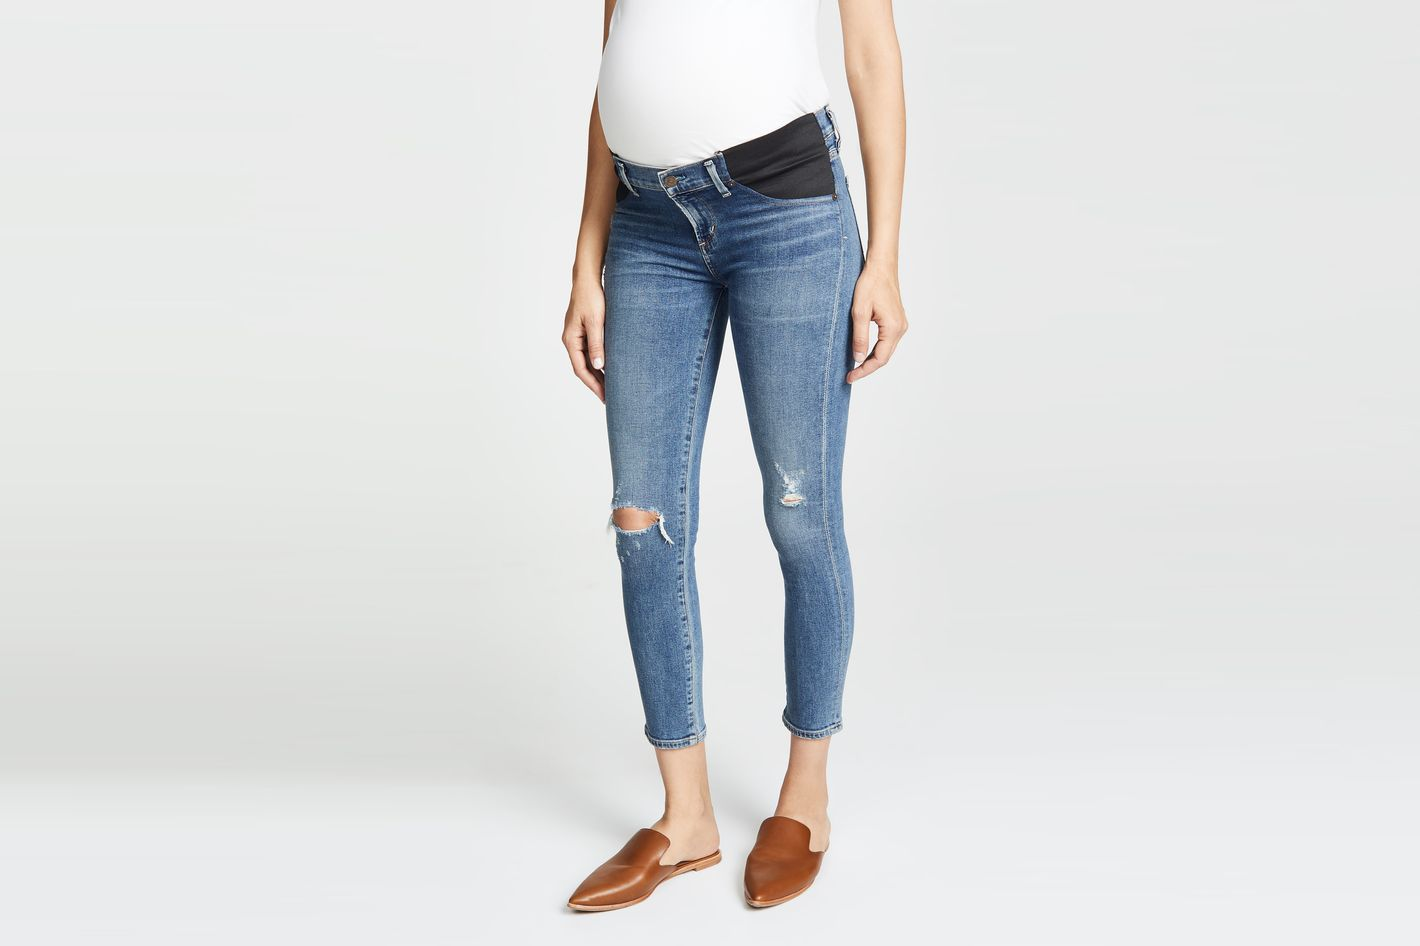 d23a5ac3910 Citizens of Humanity Maternity Avedon Ankle Jeans